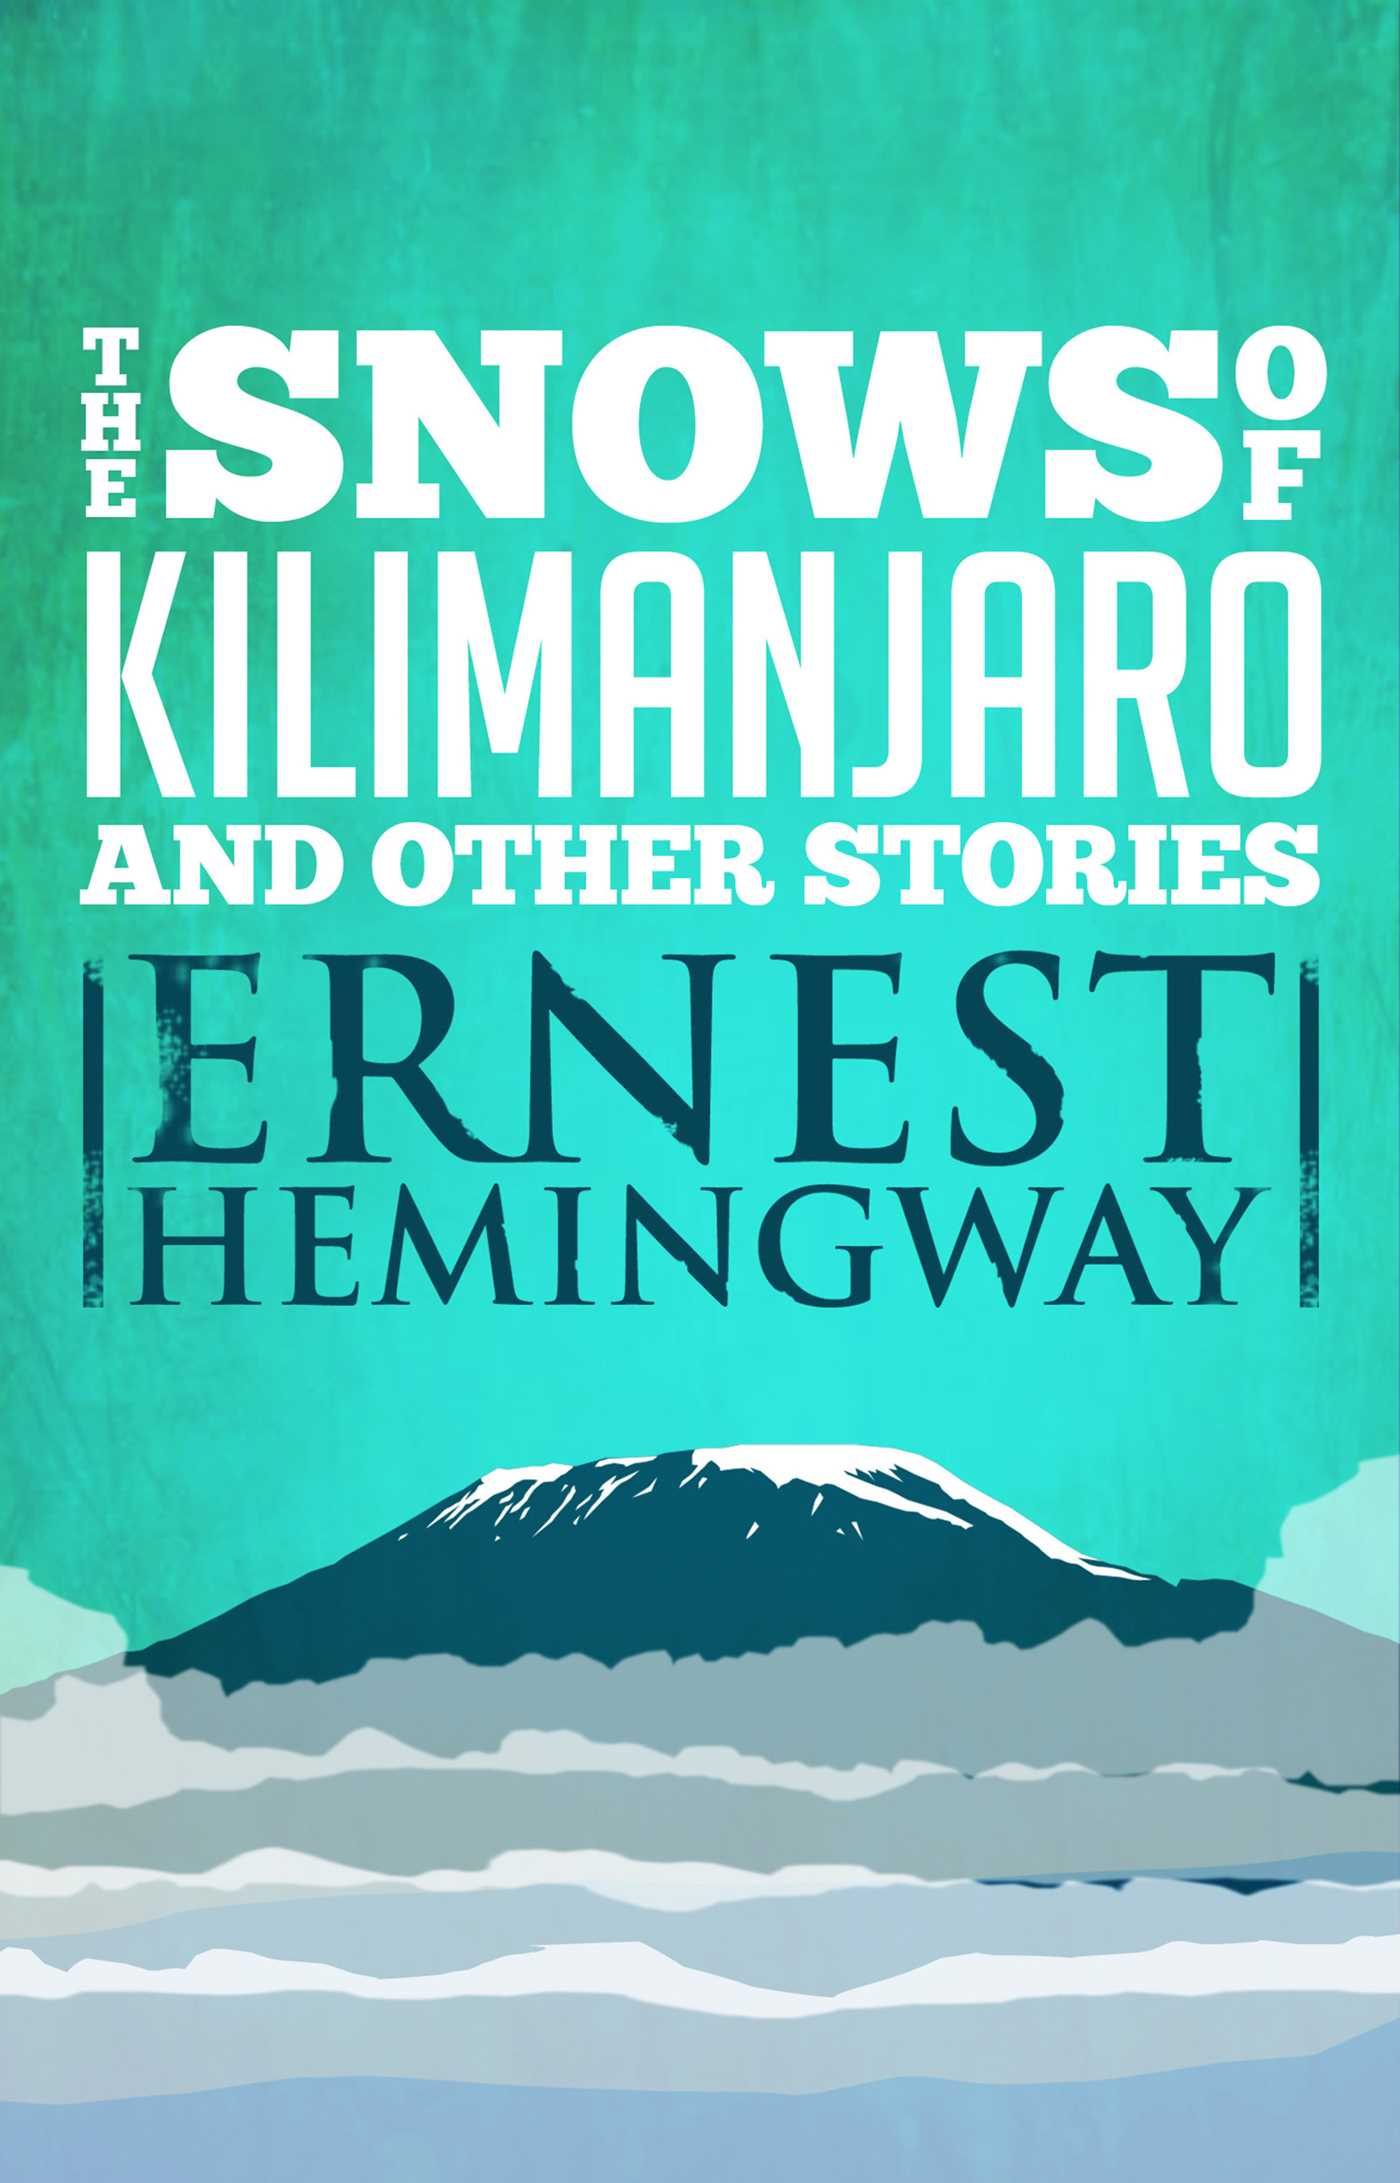 a critical analysis of ernest hemingways the snows of kilimanjaro The snows of kilimanjaro -- editor's note: this short story -- written in 1938 -- reflects several of hemingway's personal concerns during the 1930s regarding his existence as a writer and his life in general hemingway remarked in green hills that politics, women, drink.